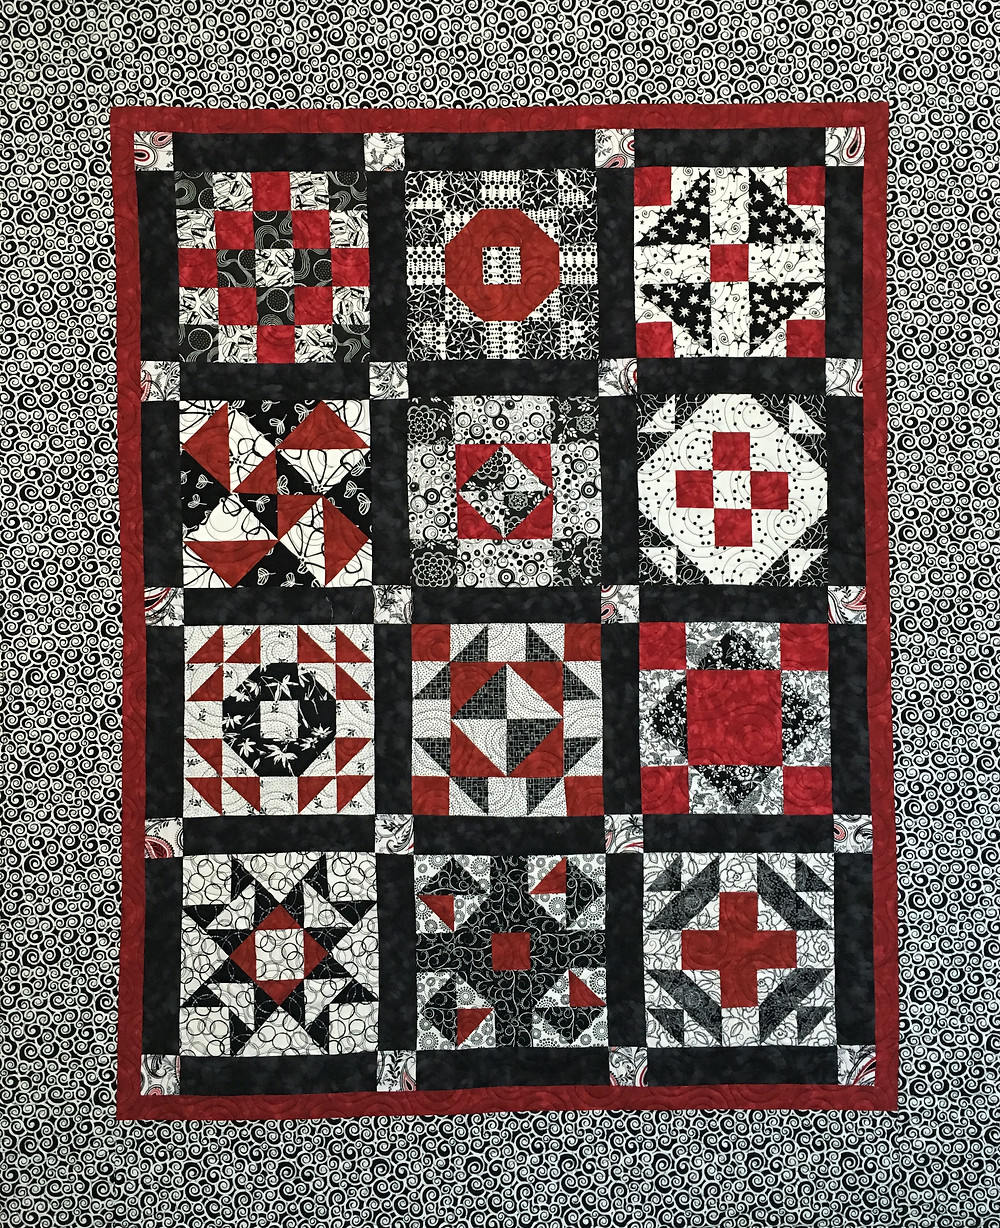 Red and Black Sampler Quilt by Debbie Seitz